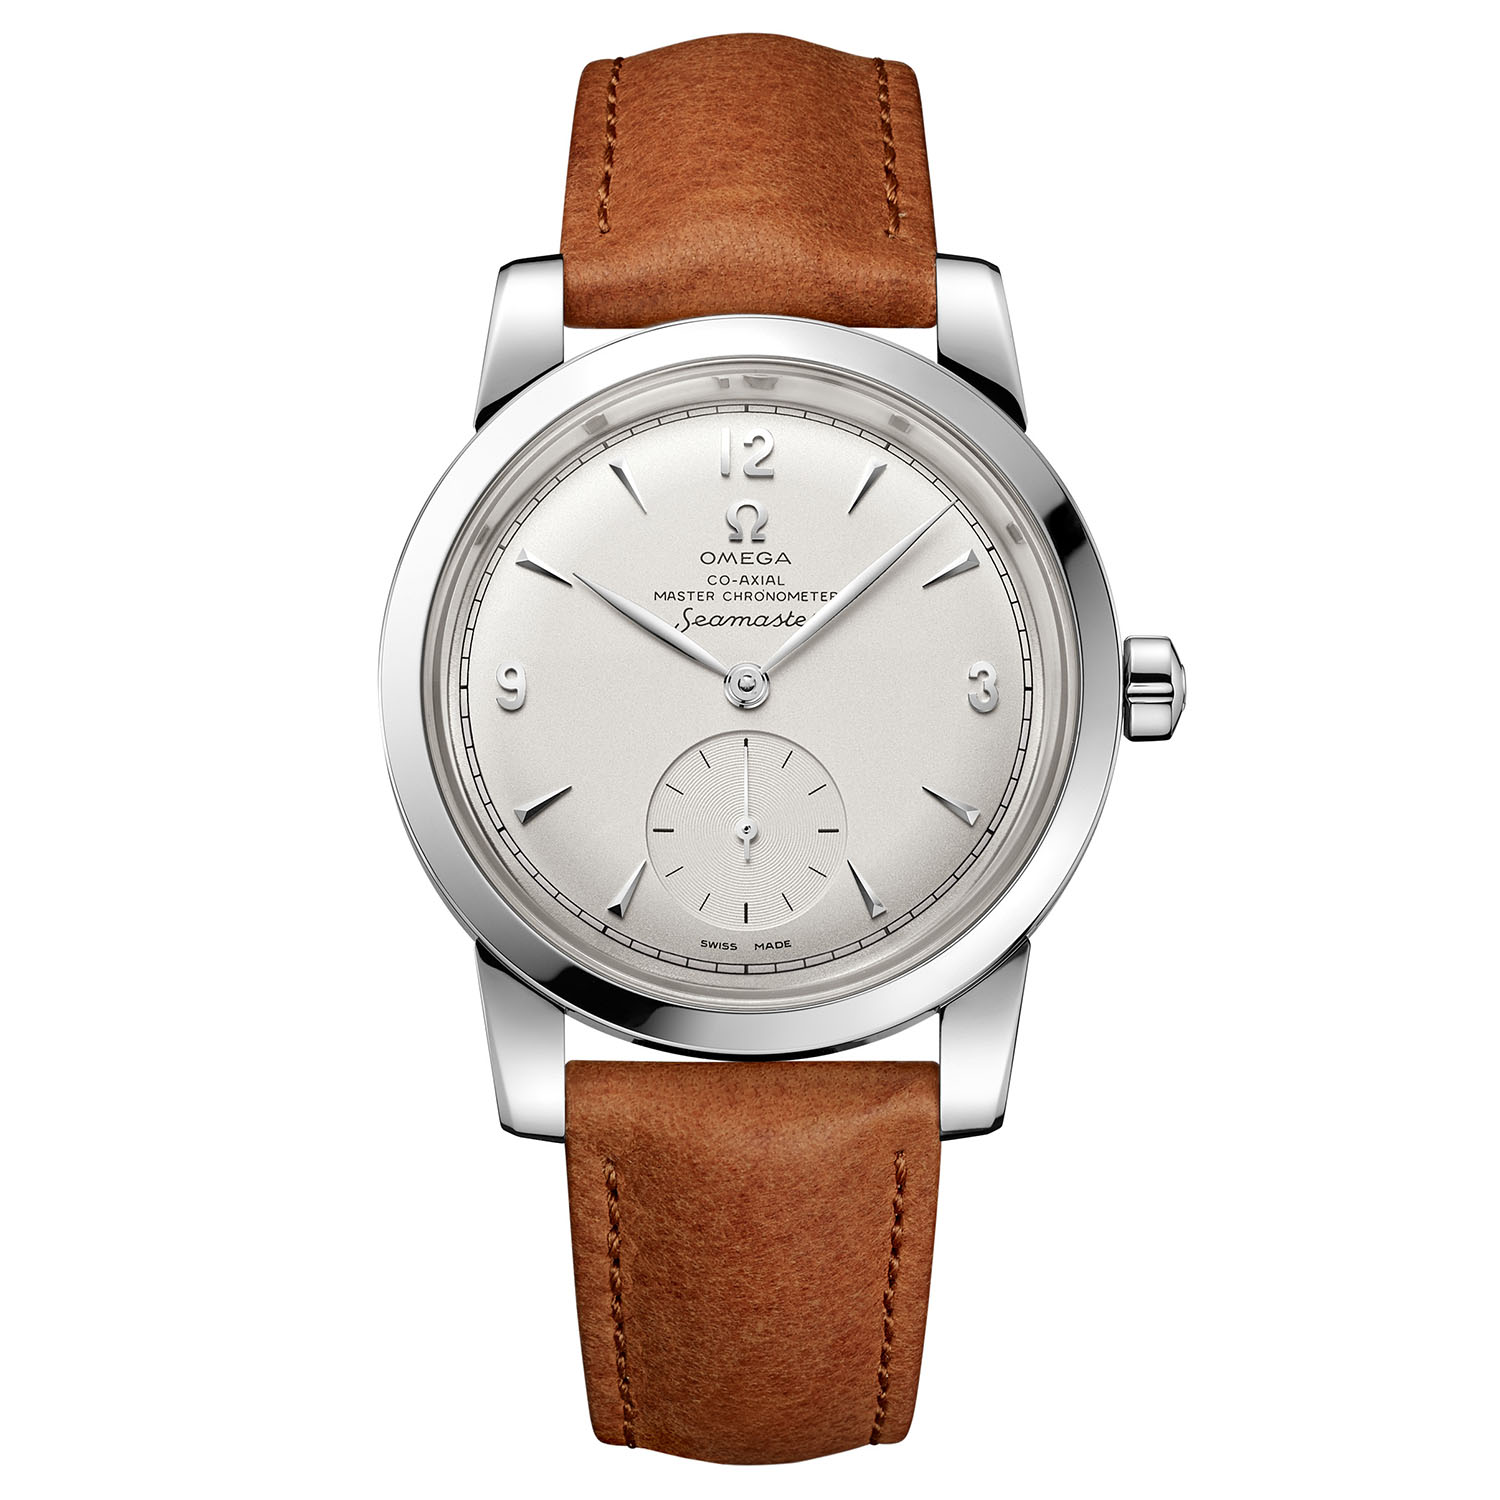 Omega Seamaster 1948 Limited Edition Small Second Baselworld 2018 - 511.12.38.20.02.001